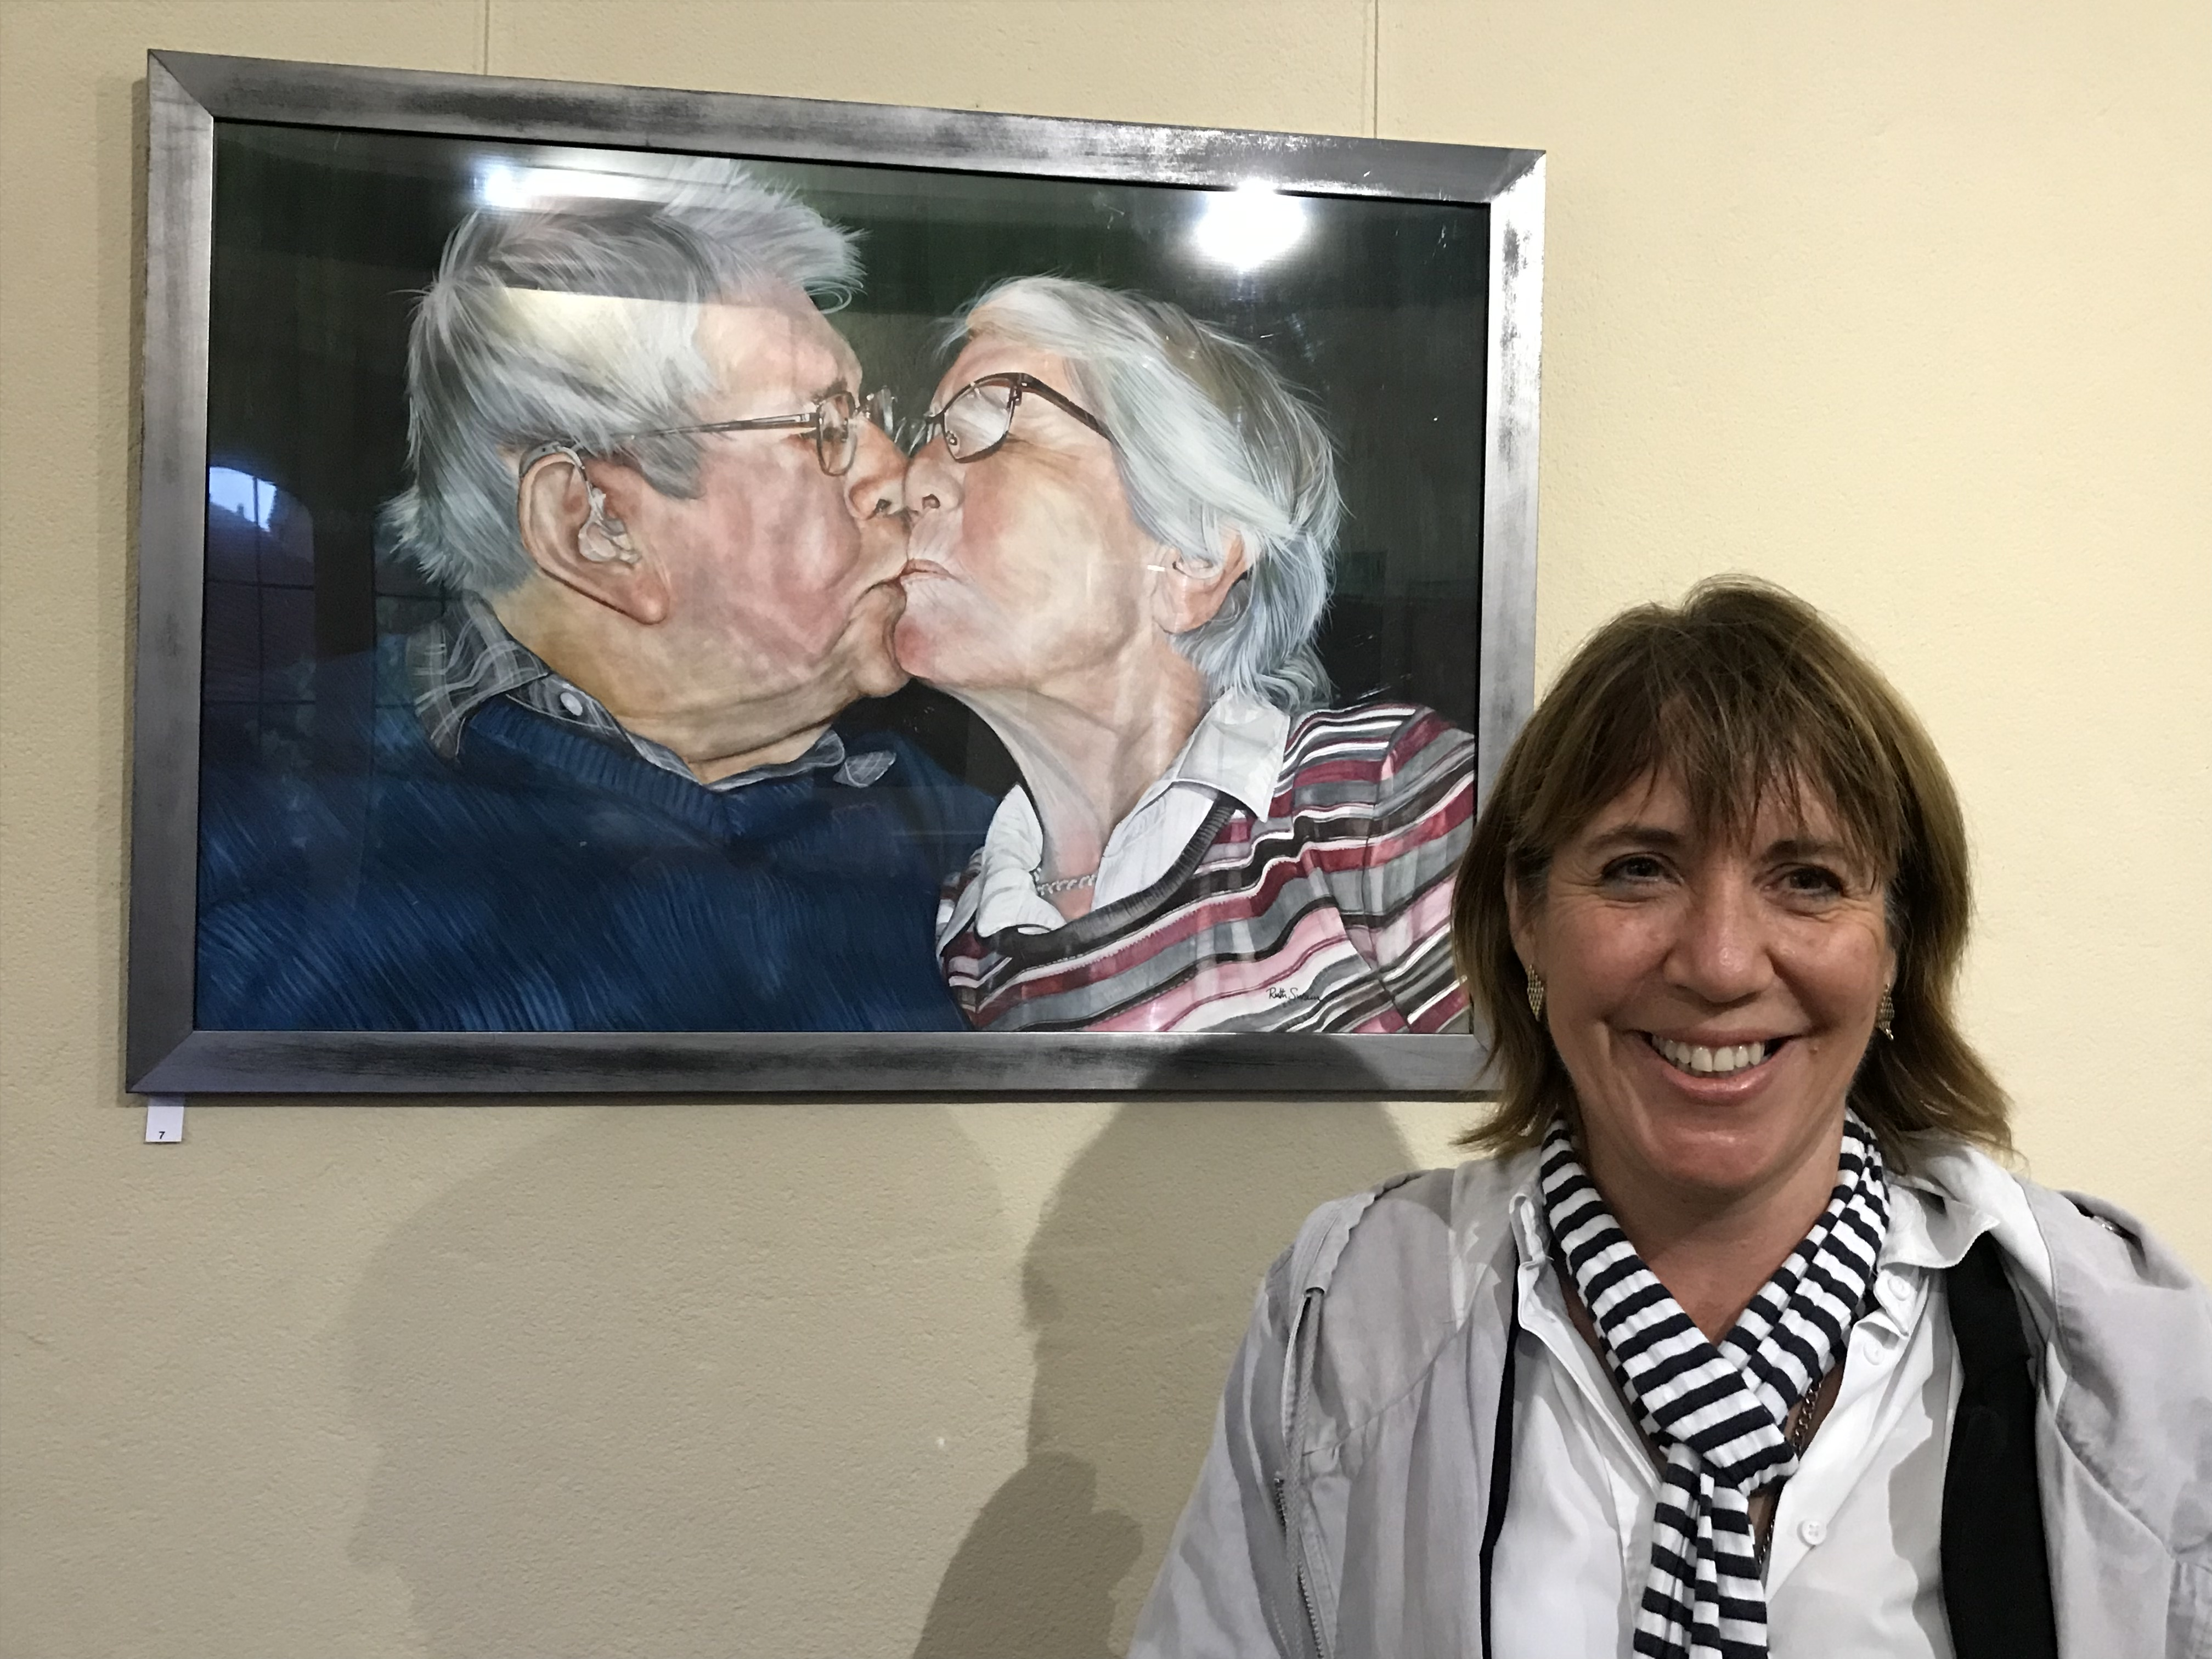 'Snogging' My portrait of my parents kissing at the O.A.S. Open exhibition 2019